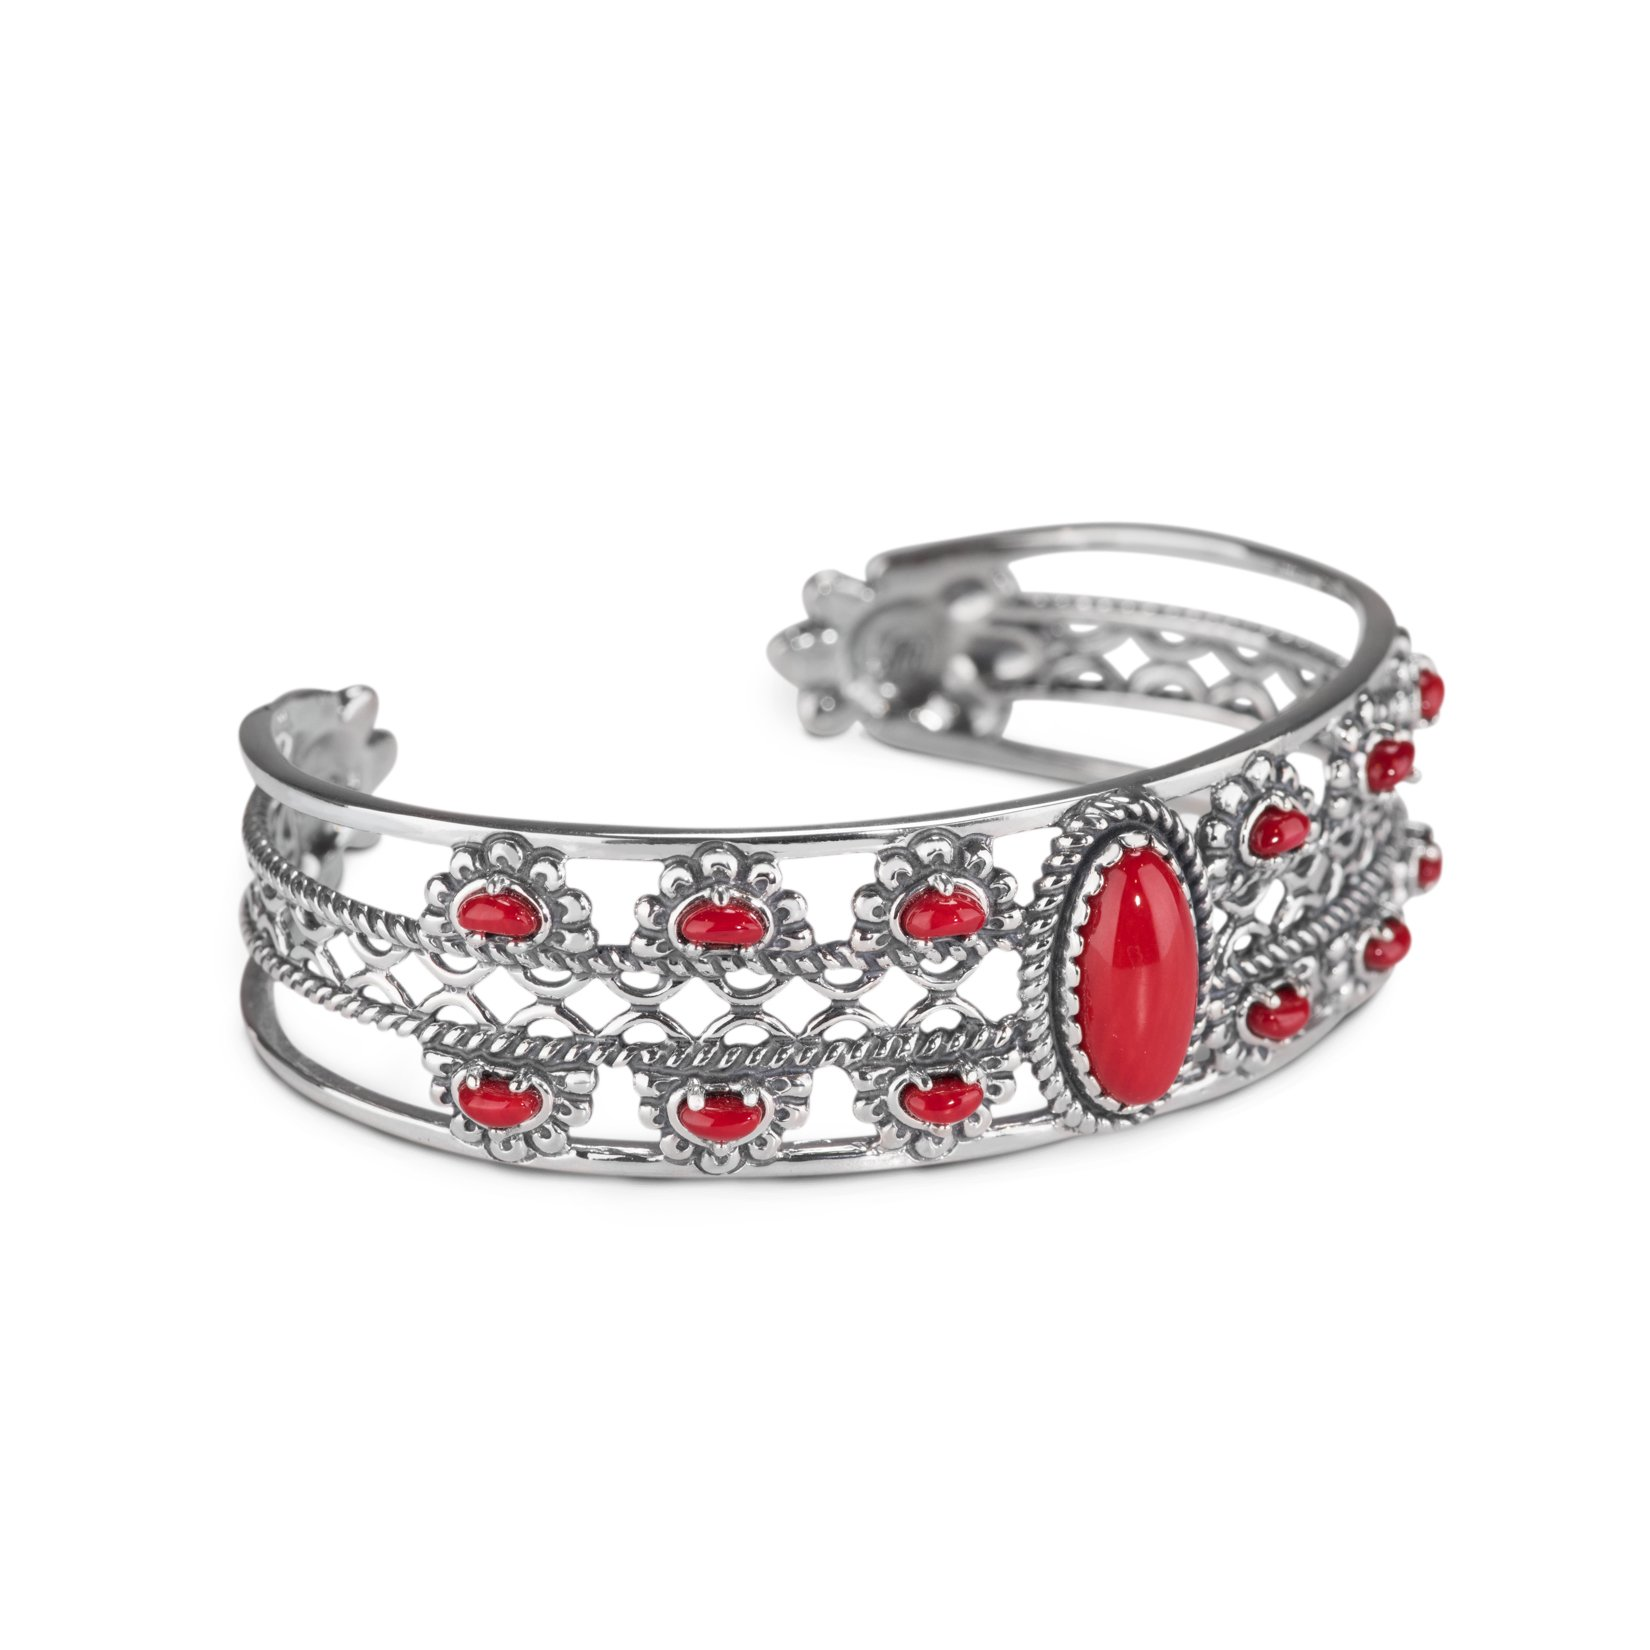 American West Sterling Silver Red Coral Floral Cuff Bracelet, Average